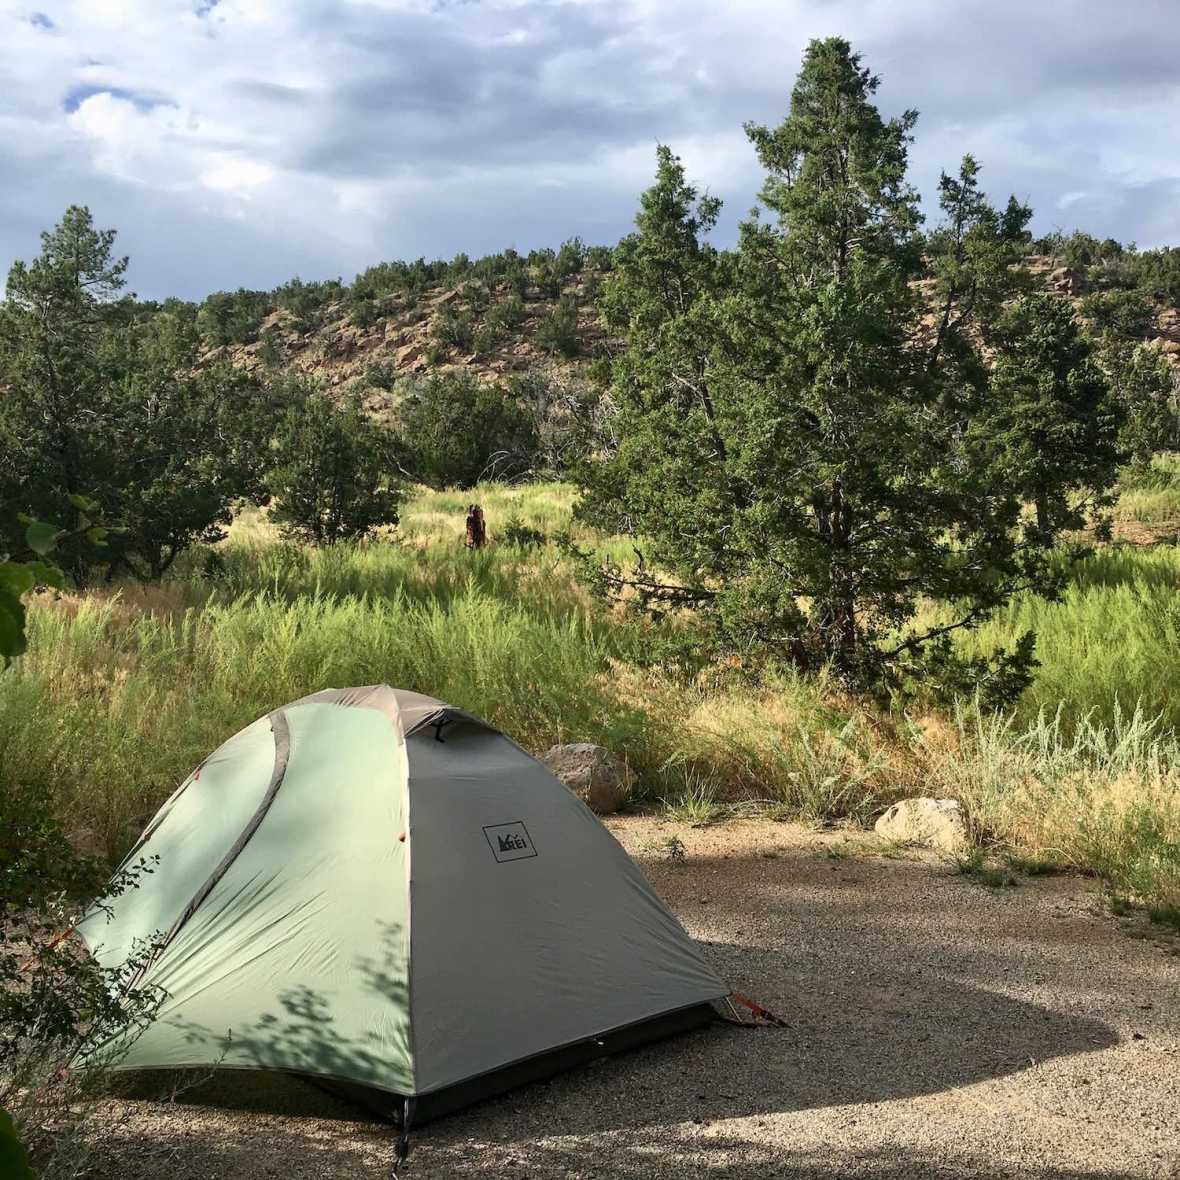 Camping at the Juniper Family campground in Bandelier National Monument